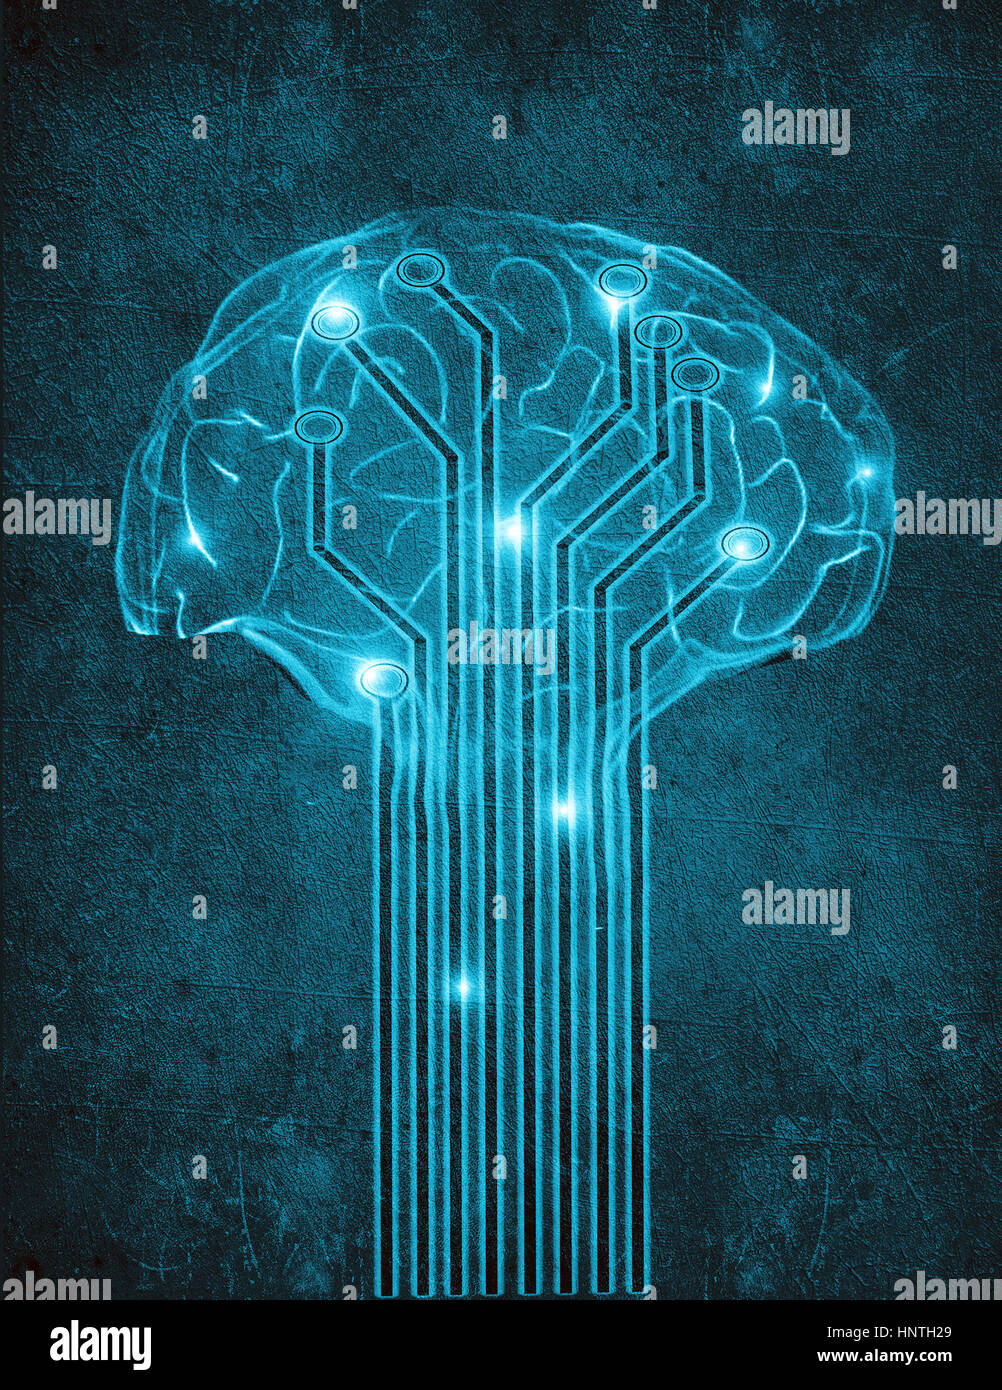 artificial intelligence digital illustration concept with brain - Stock Image